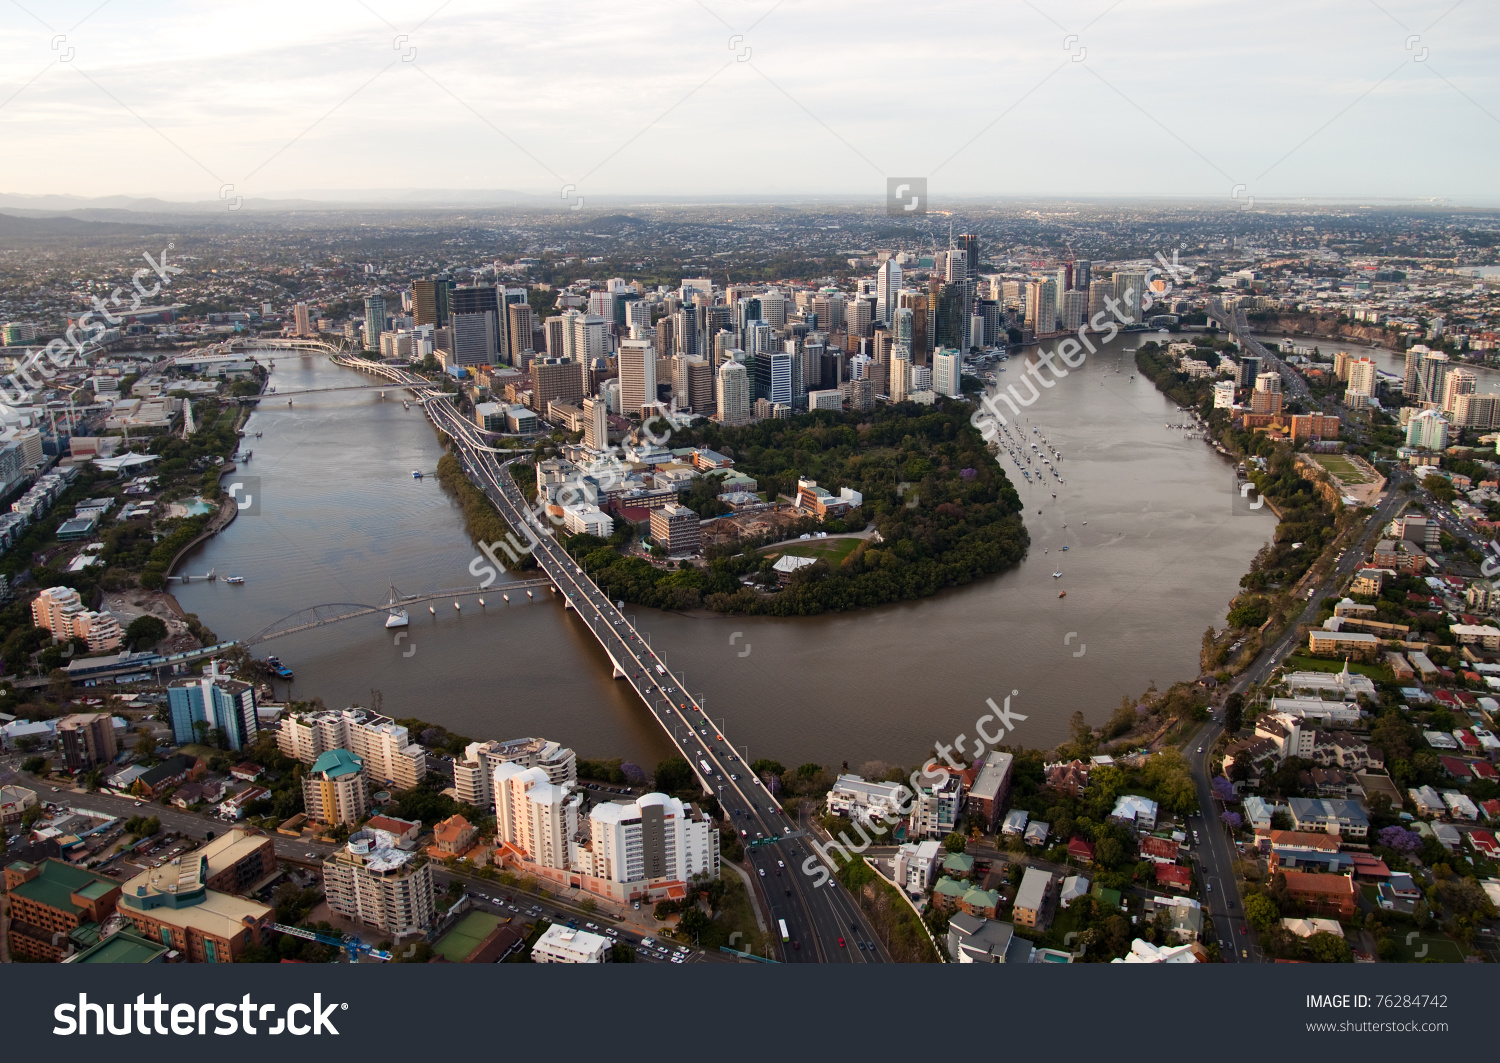 Aerial Image Of Brisbane At Dusk And The Brisbane River Meandering.